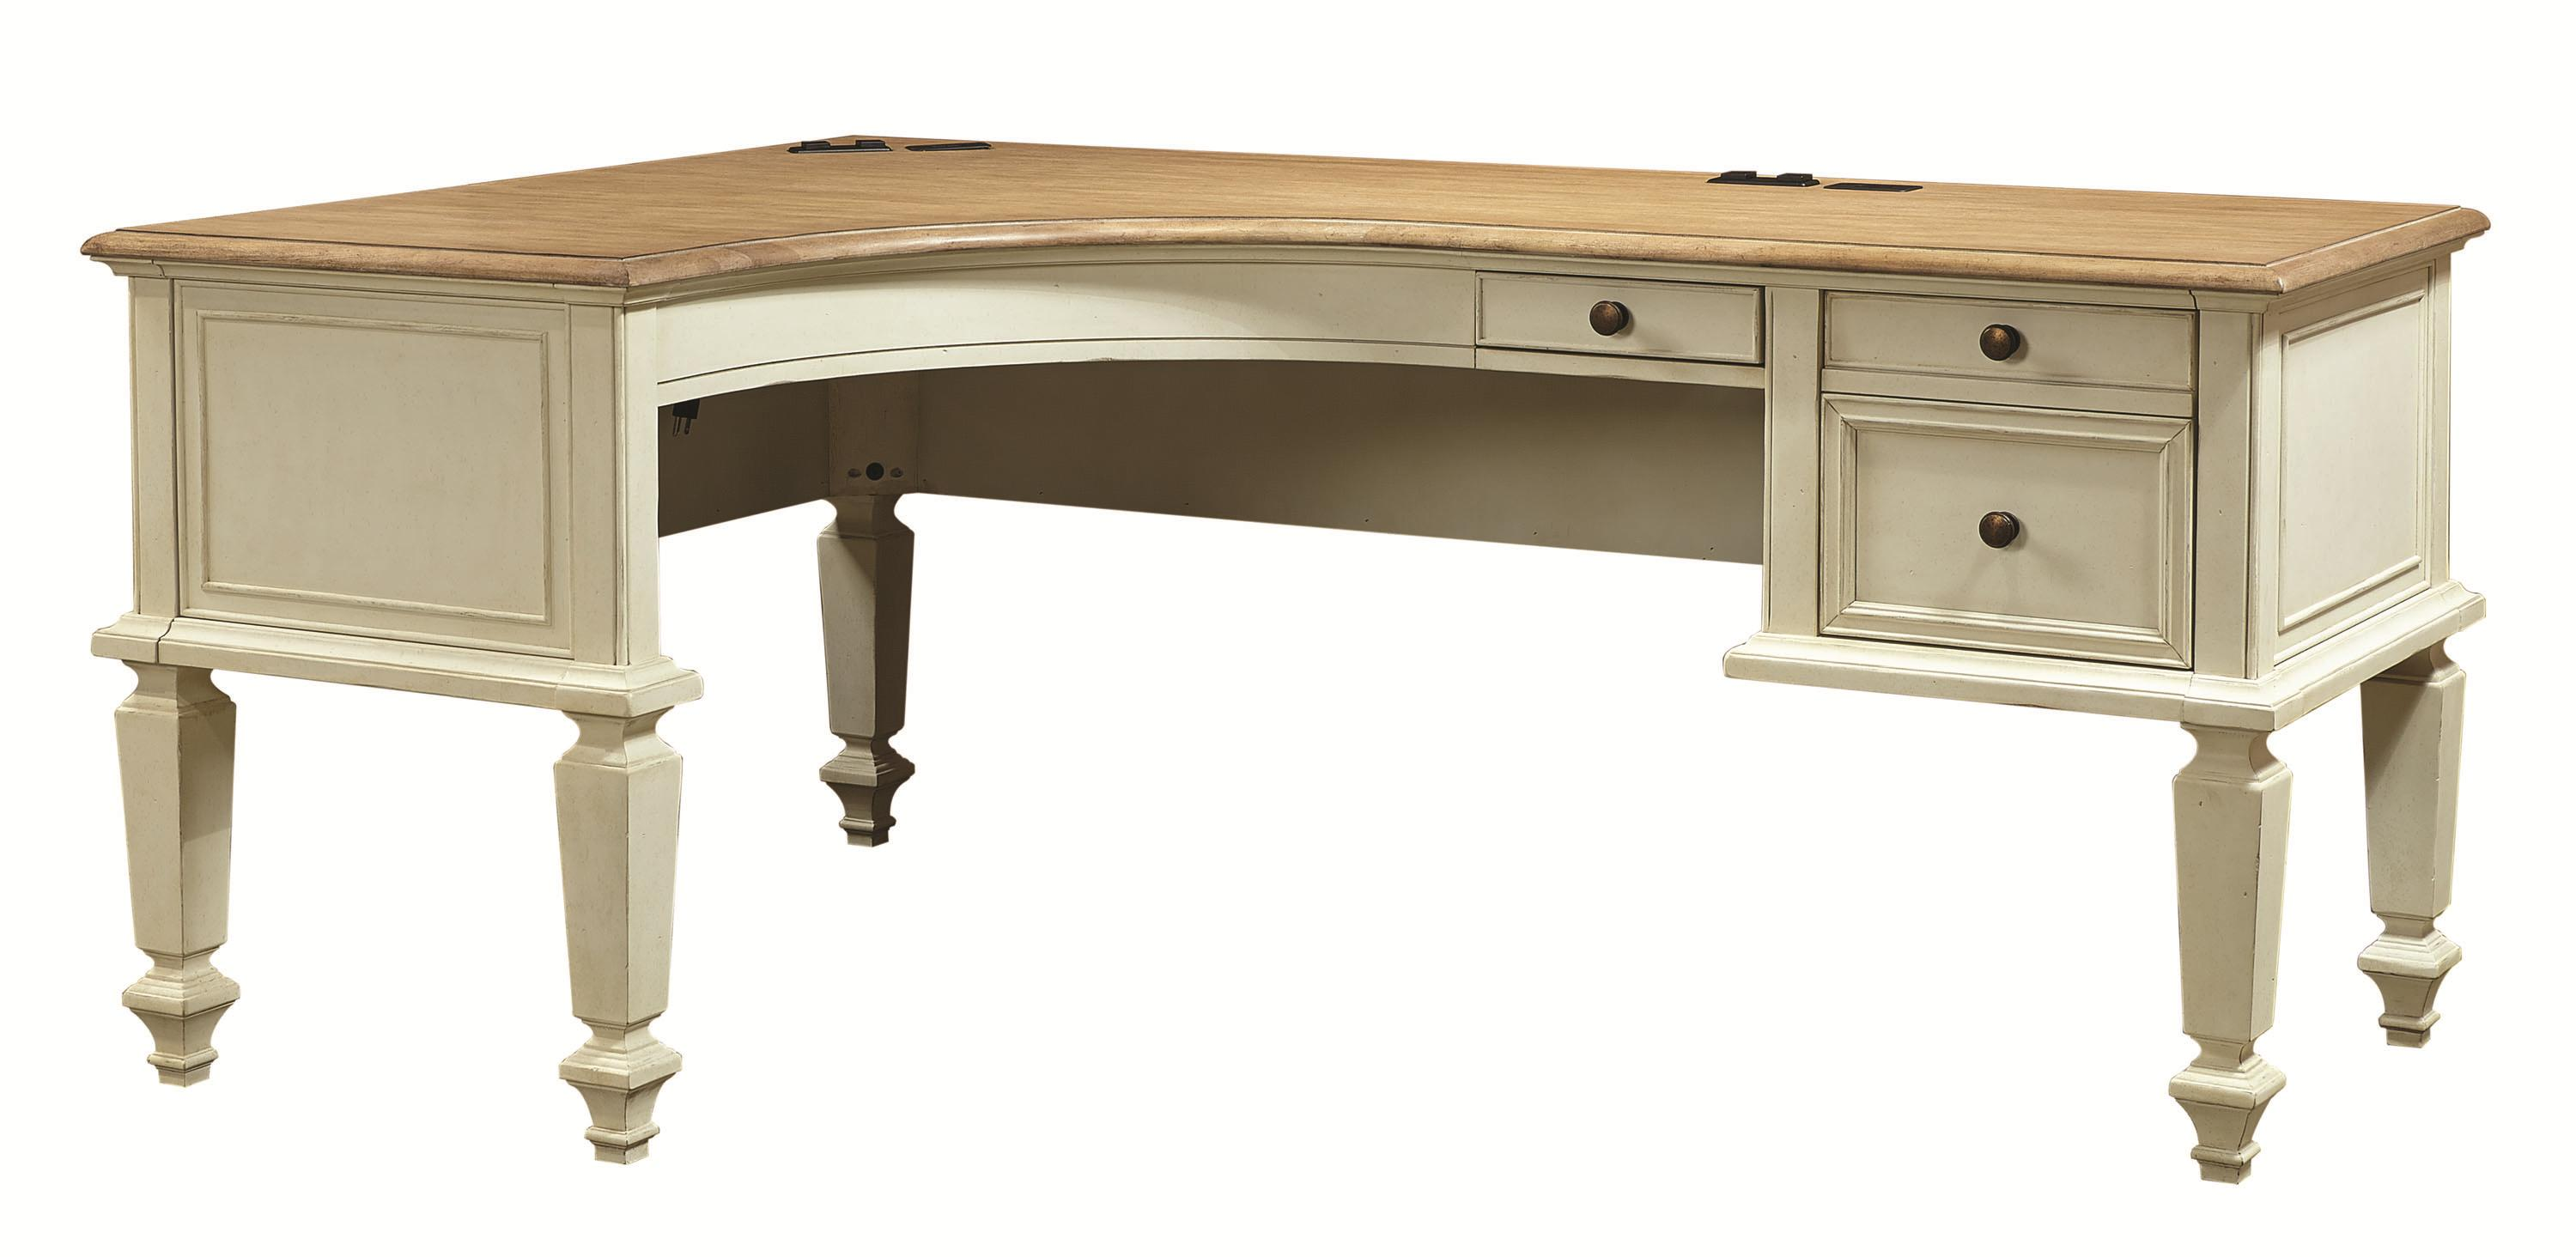 Curved Half Pedestal L-Shaped Desk with File Drawers by Aspenhome ...